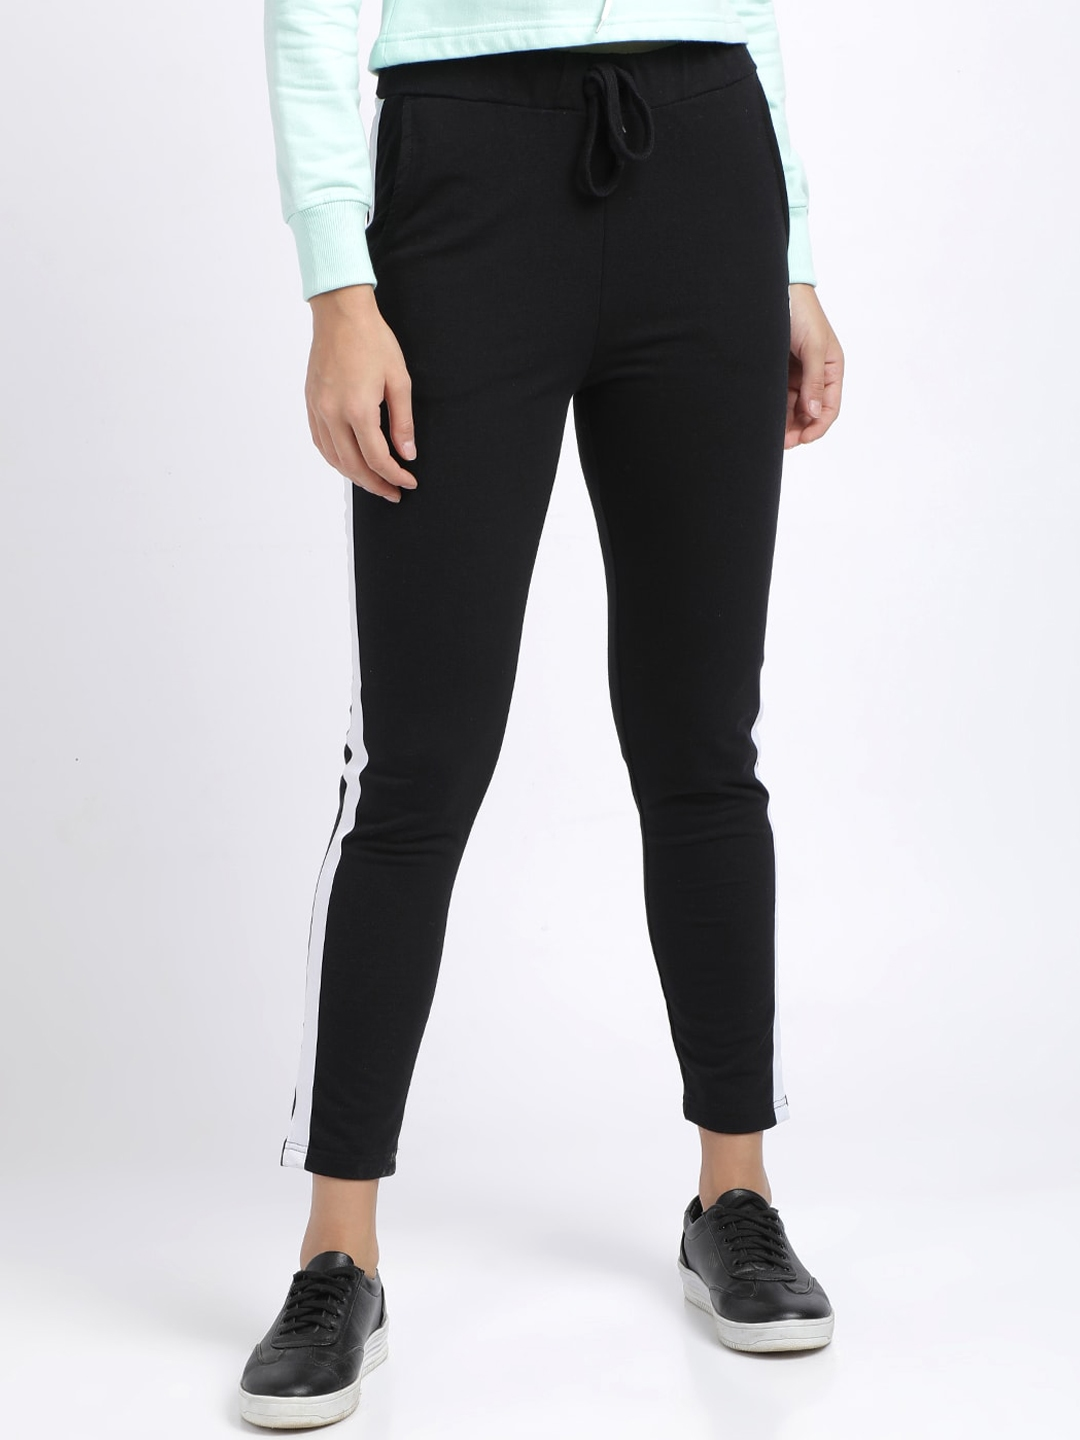 BEVERLY BLUES Women Navy Blue Solid Slim Fit Track Pants